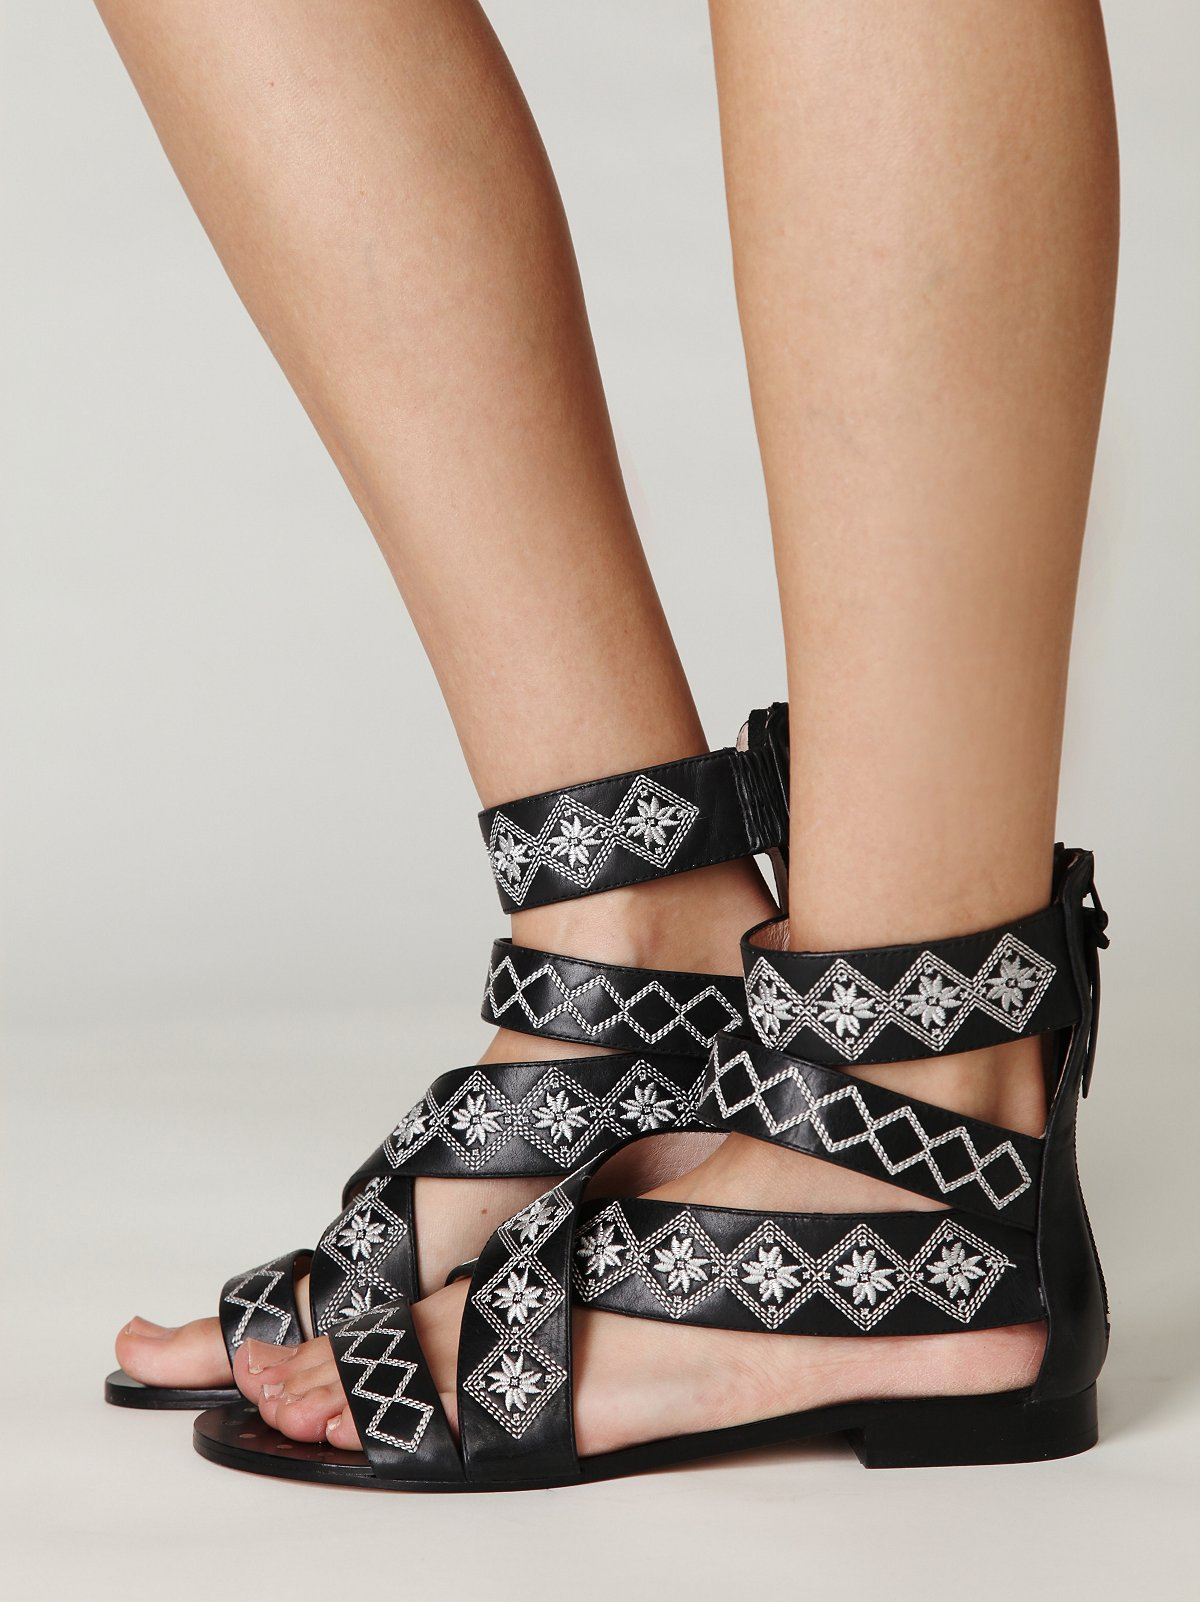 Steffie Dutch Sandal